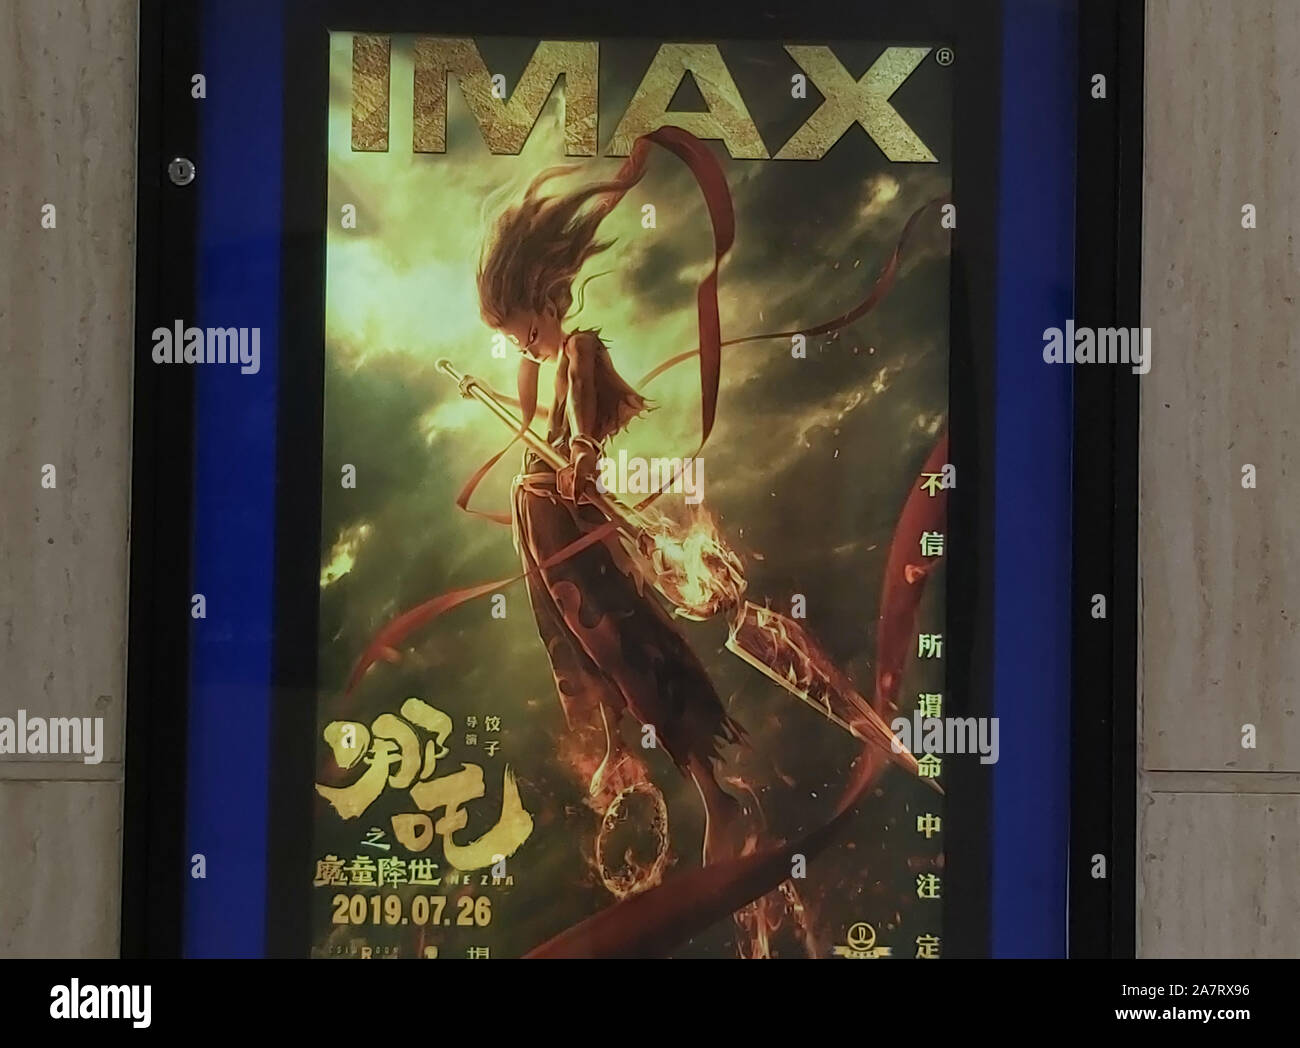 Page 2 Animated Film Poster High Resolution Stock Photography And Images Alamy